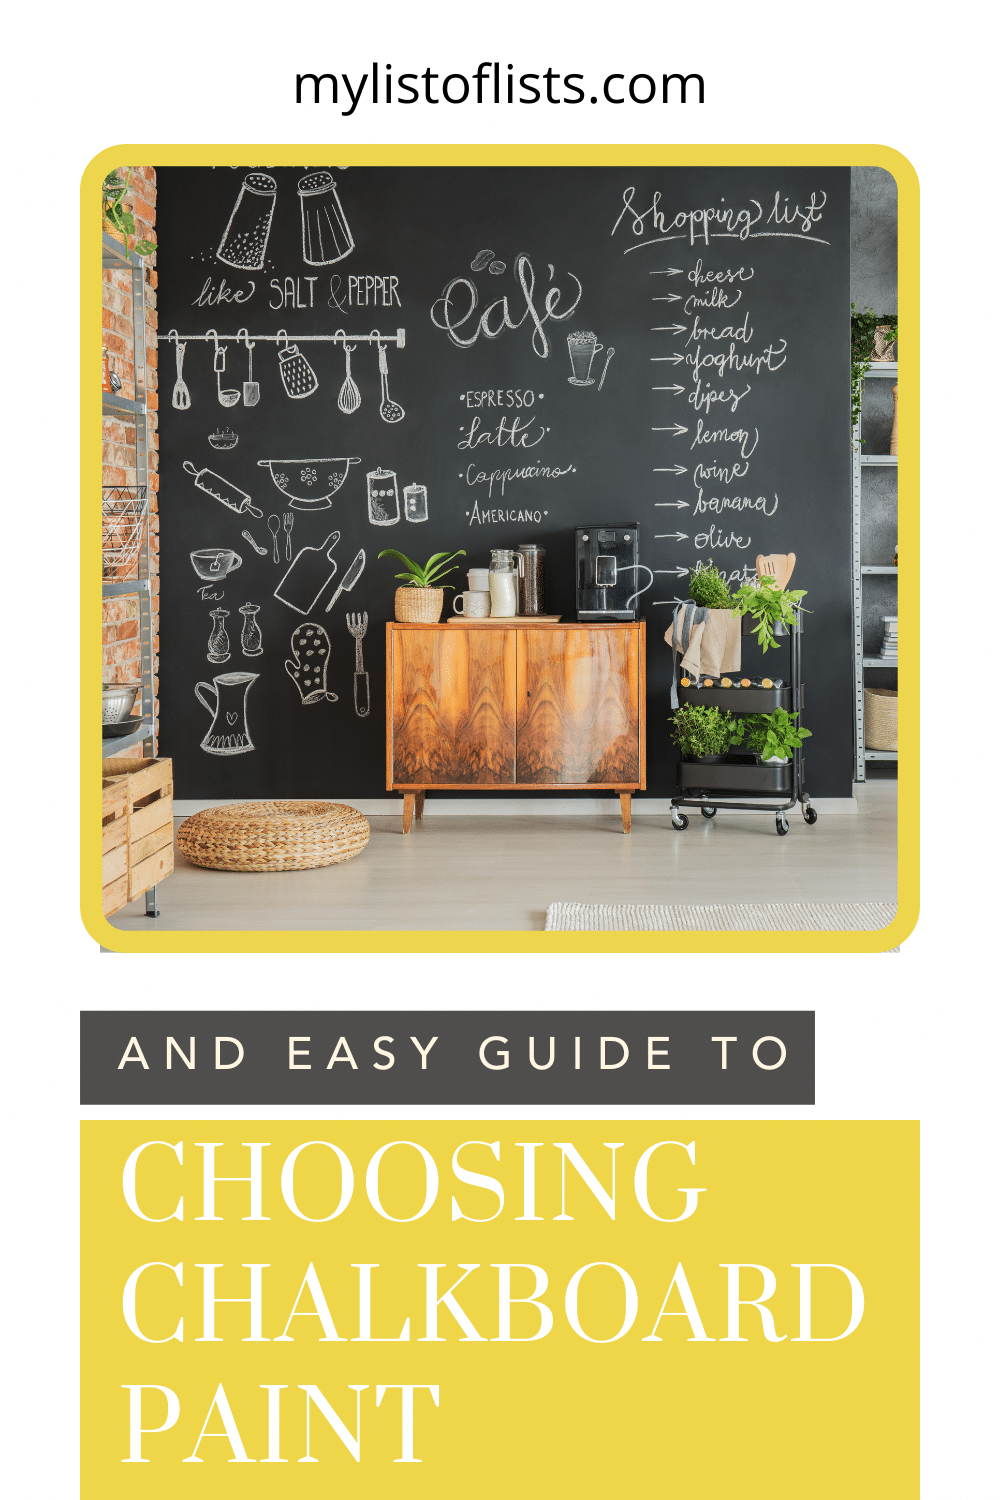 Mylistoflists.com has all you need to know about a whole range of topics! If you've been getting crafty, learn how to make new mediums! Find out what chalkboard paint you should be using!